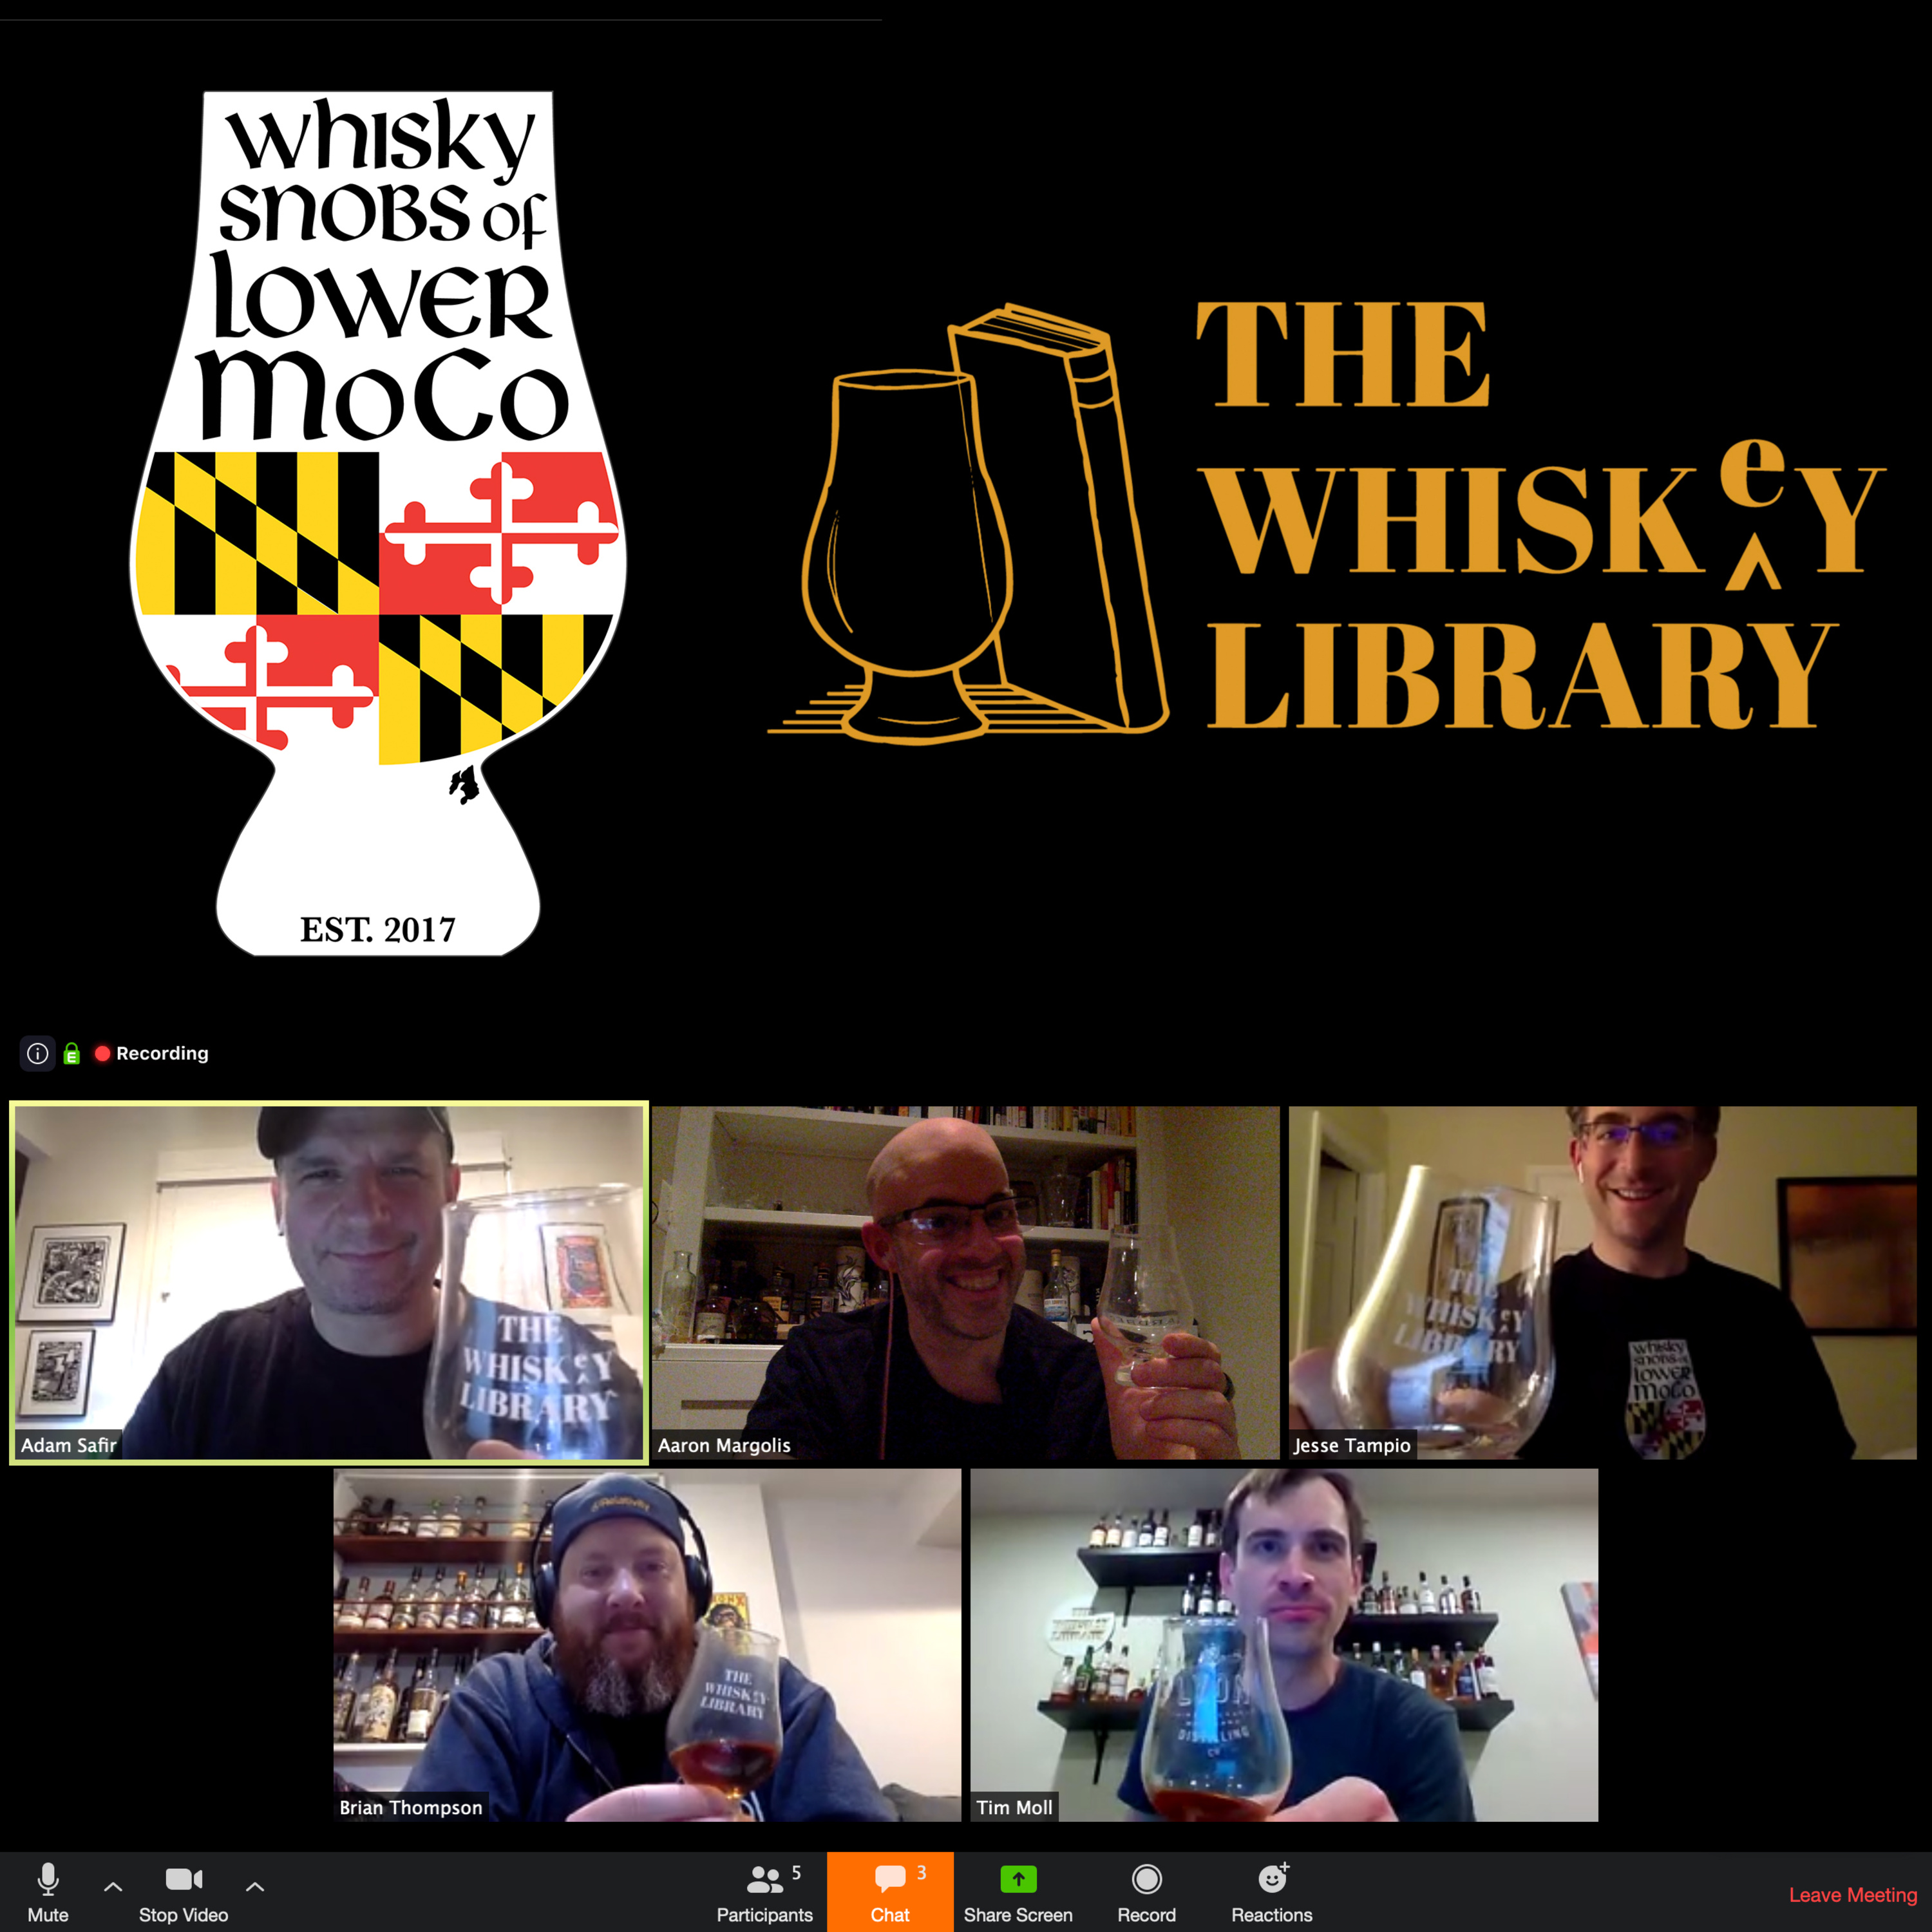 Interview & Tasting with The Whisk(e)y Library - Part 1